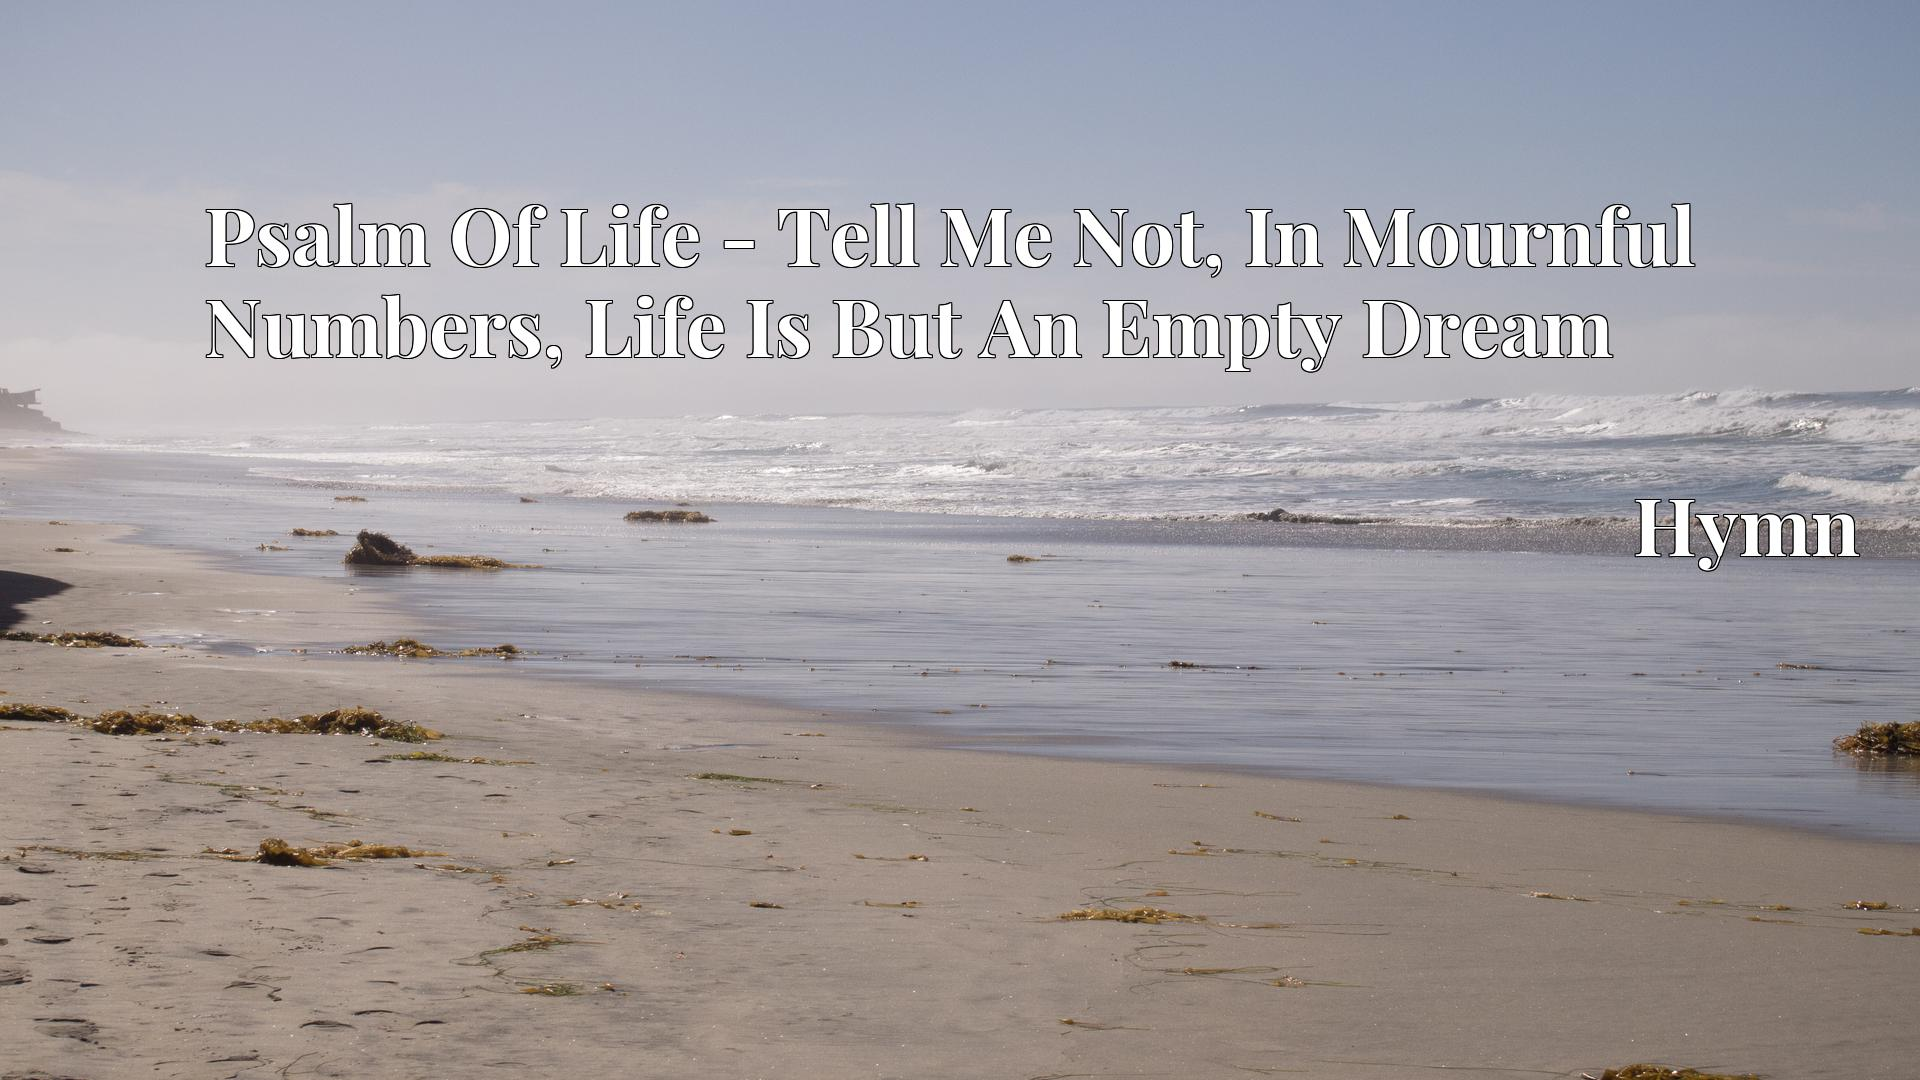 Psalm Of Life - Tell Me Not, In Mournful Numbers, Life Is But An Empty Dream - Hymn